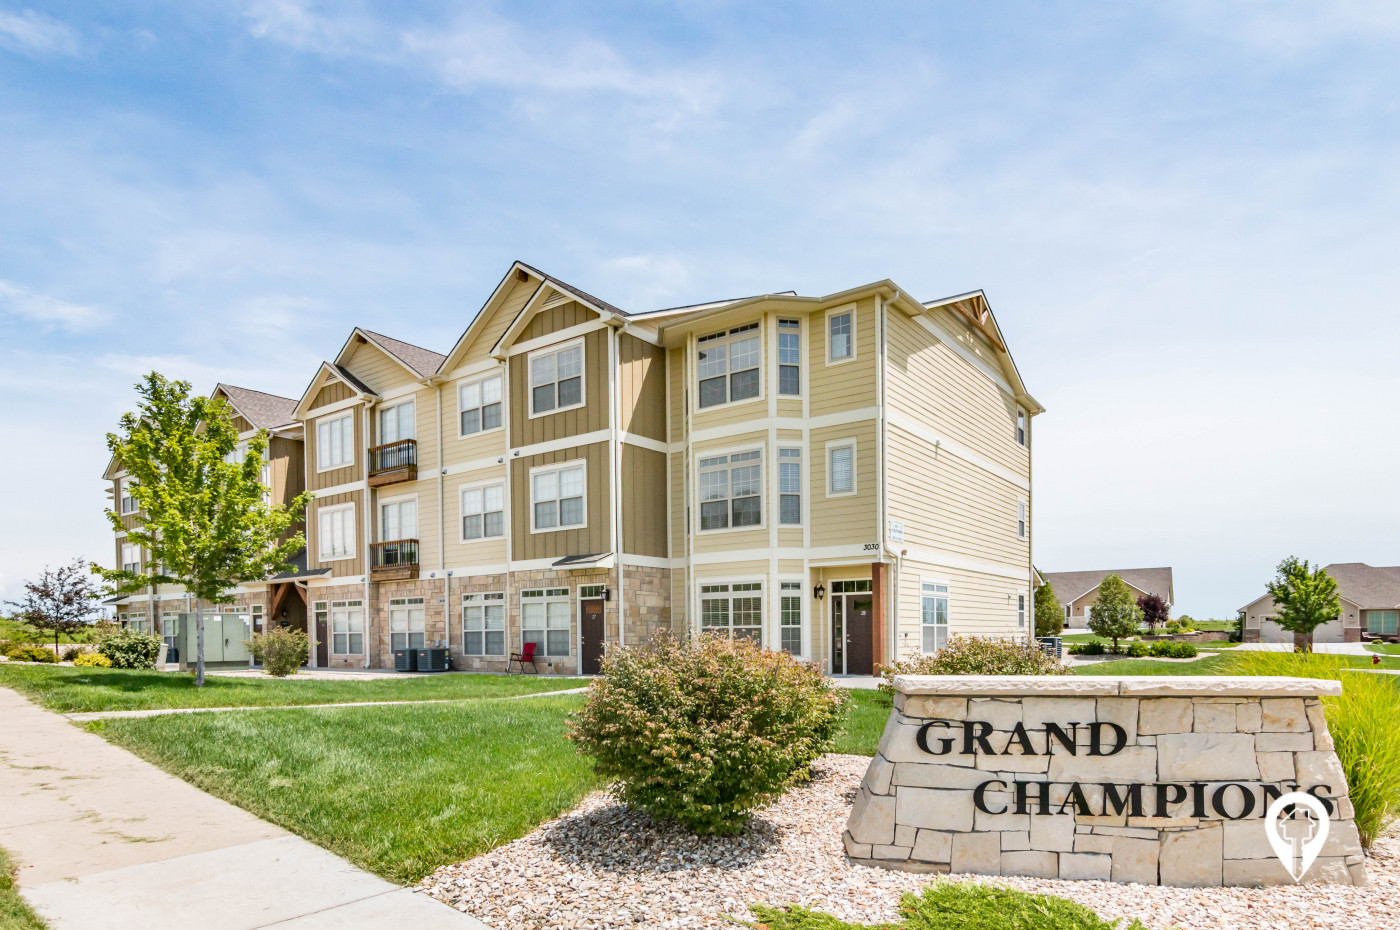 Grand Champions Apartments